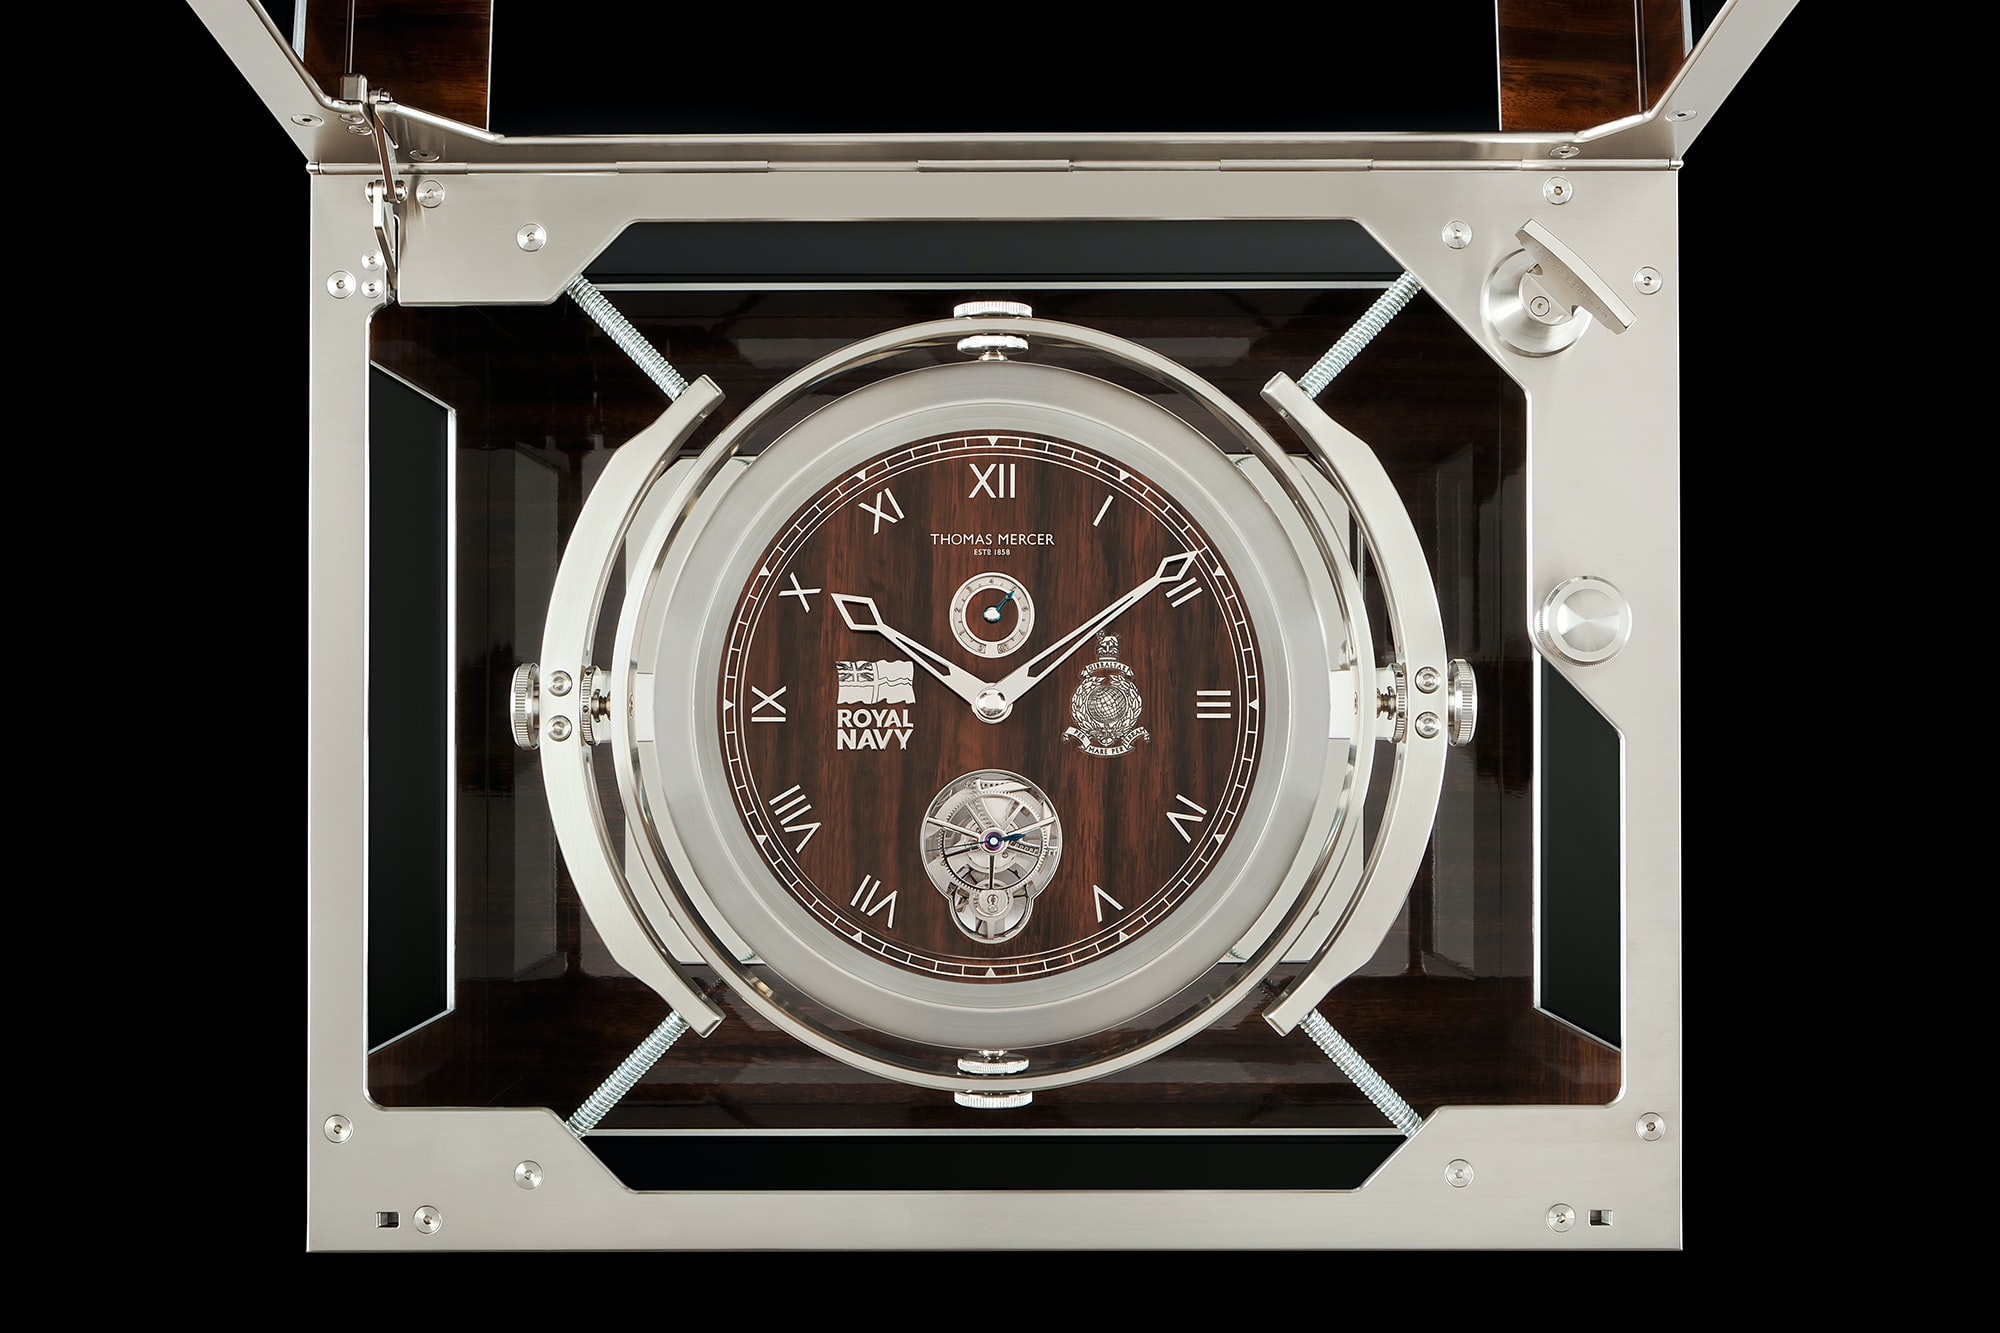 Thomas Mercer Marine Chronometer Introducing: A Thomas Mercer One-Off Marine Chronometer Made To Accompany A Re-Creation Of Shackleton's Epic Voyage Introducing: A Thomas Mercer One-Off Marine Chronometer Made To Accompany A Re-Creation Of Shackleton's Epic Voyage 3